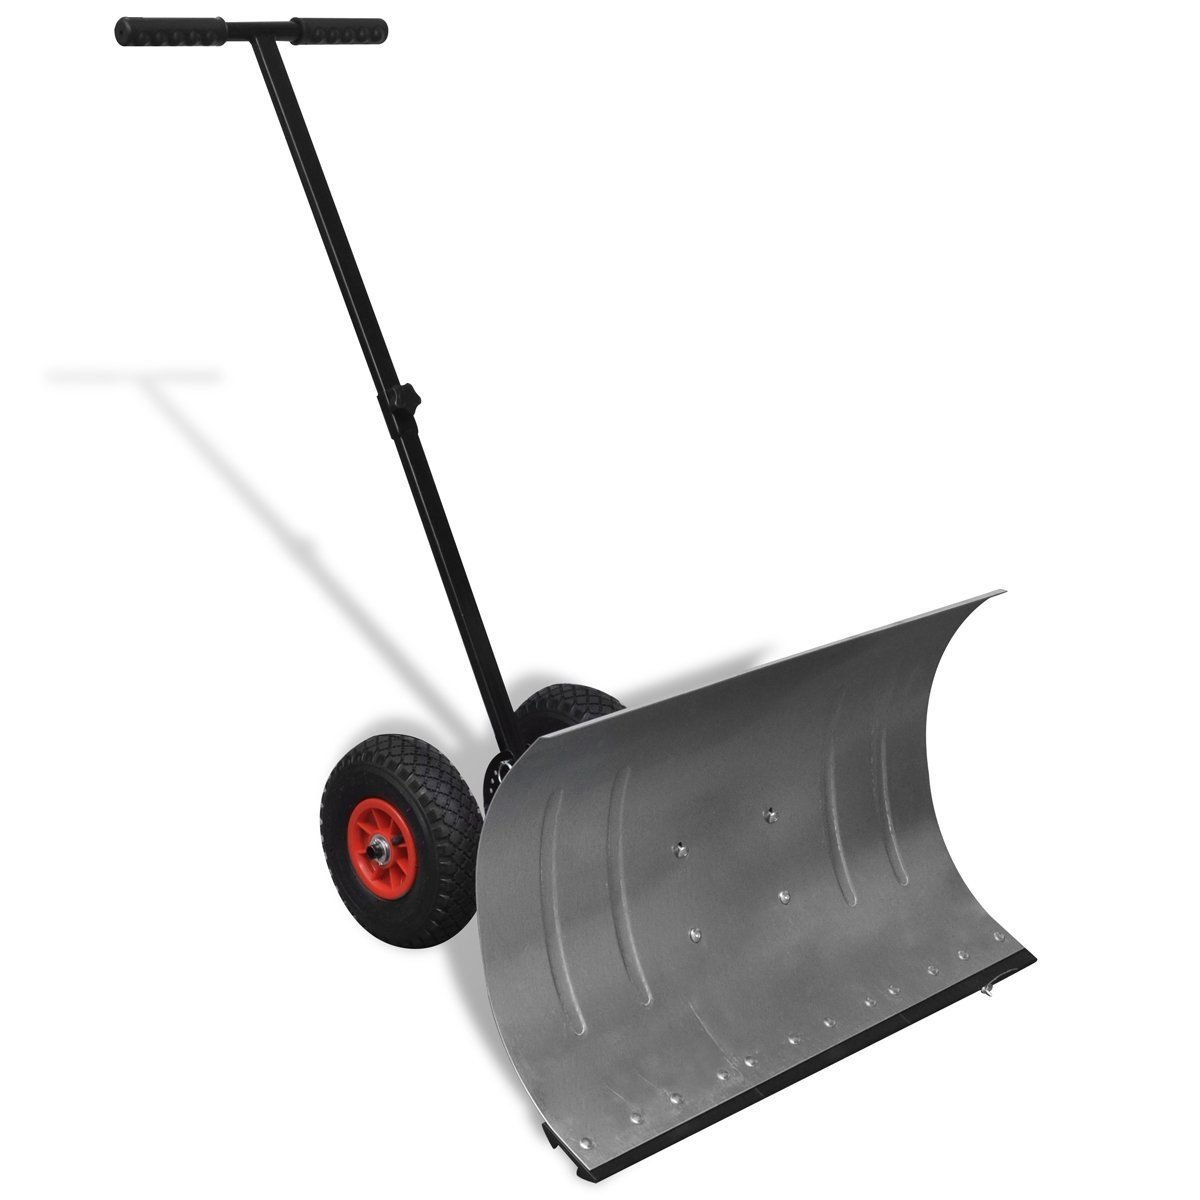 Manual Snow Shovel with Wheels, Snow Removal Equipment